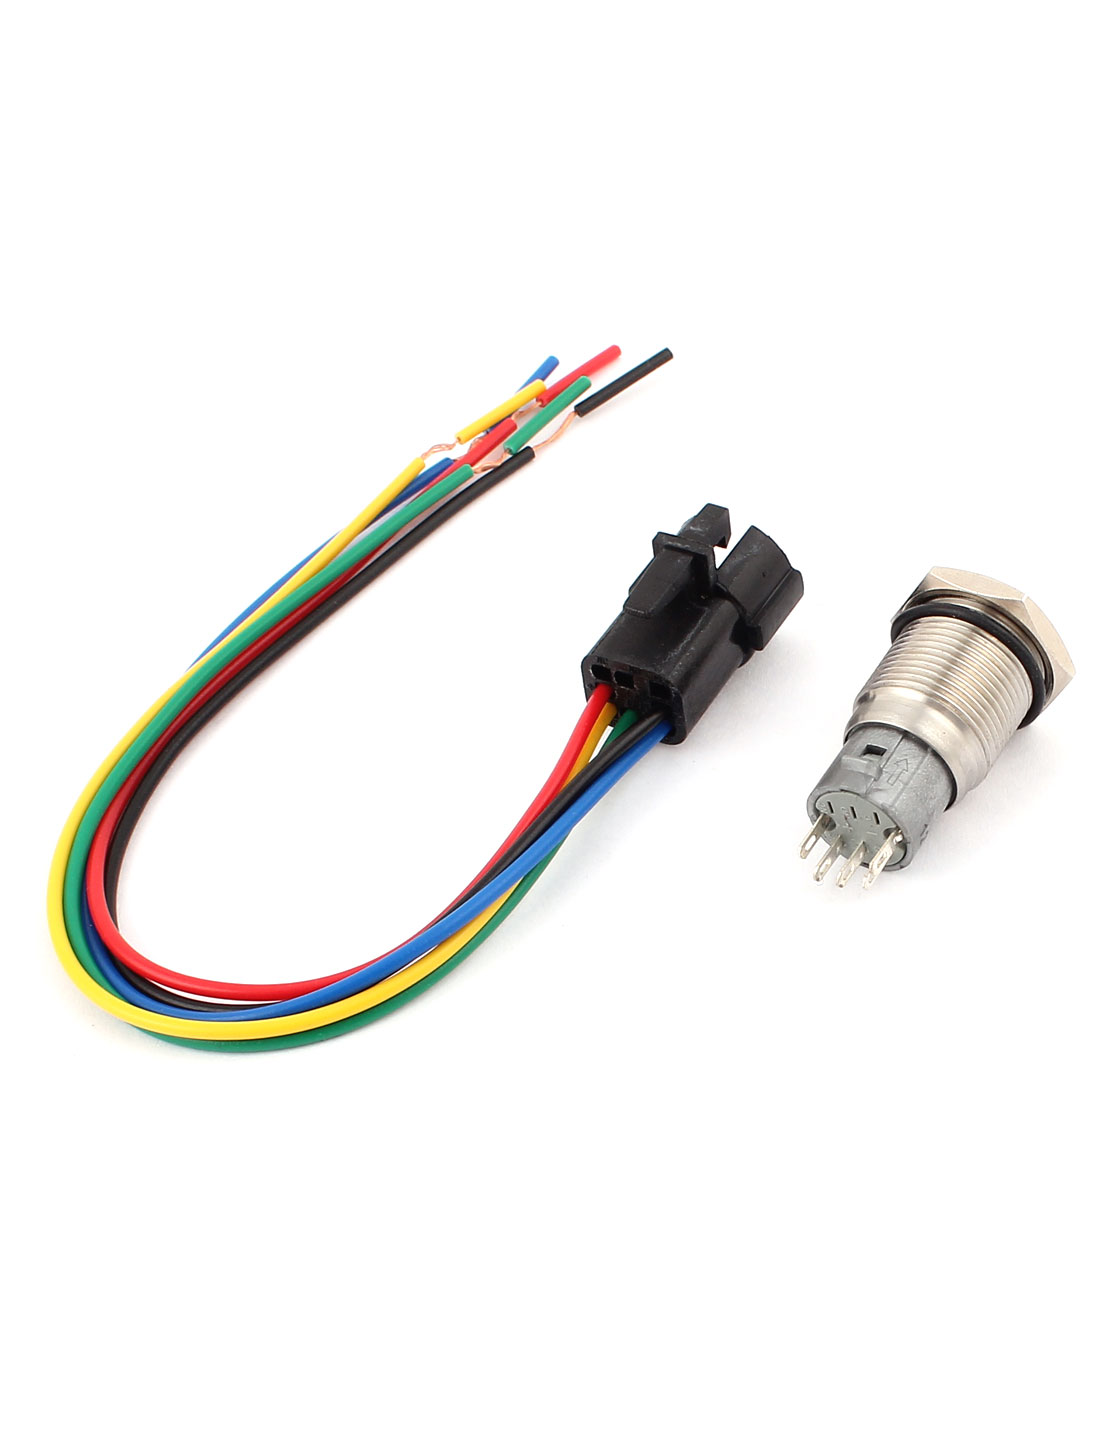 small resolution of dc 12v green angle eye spdt latching car push button switch 16mm w wire walmart canada